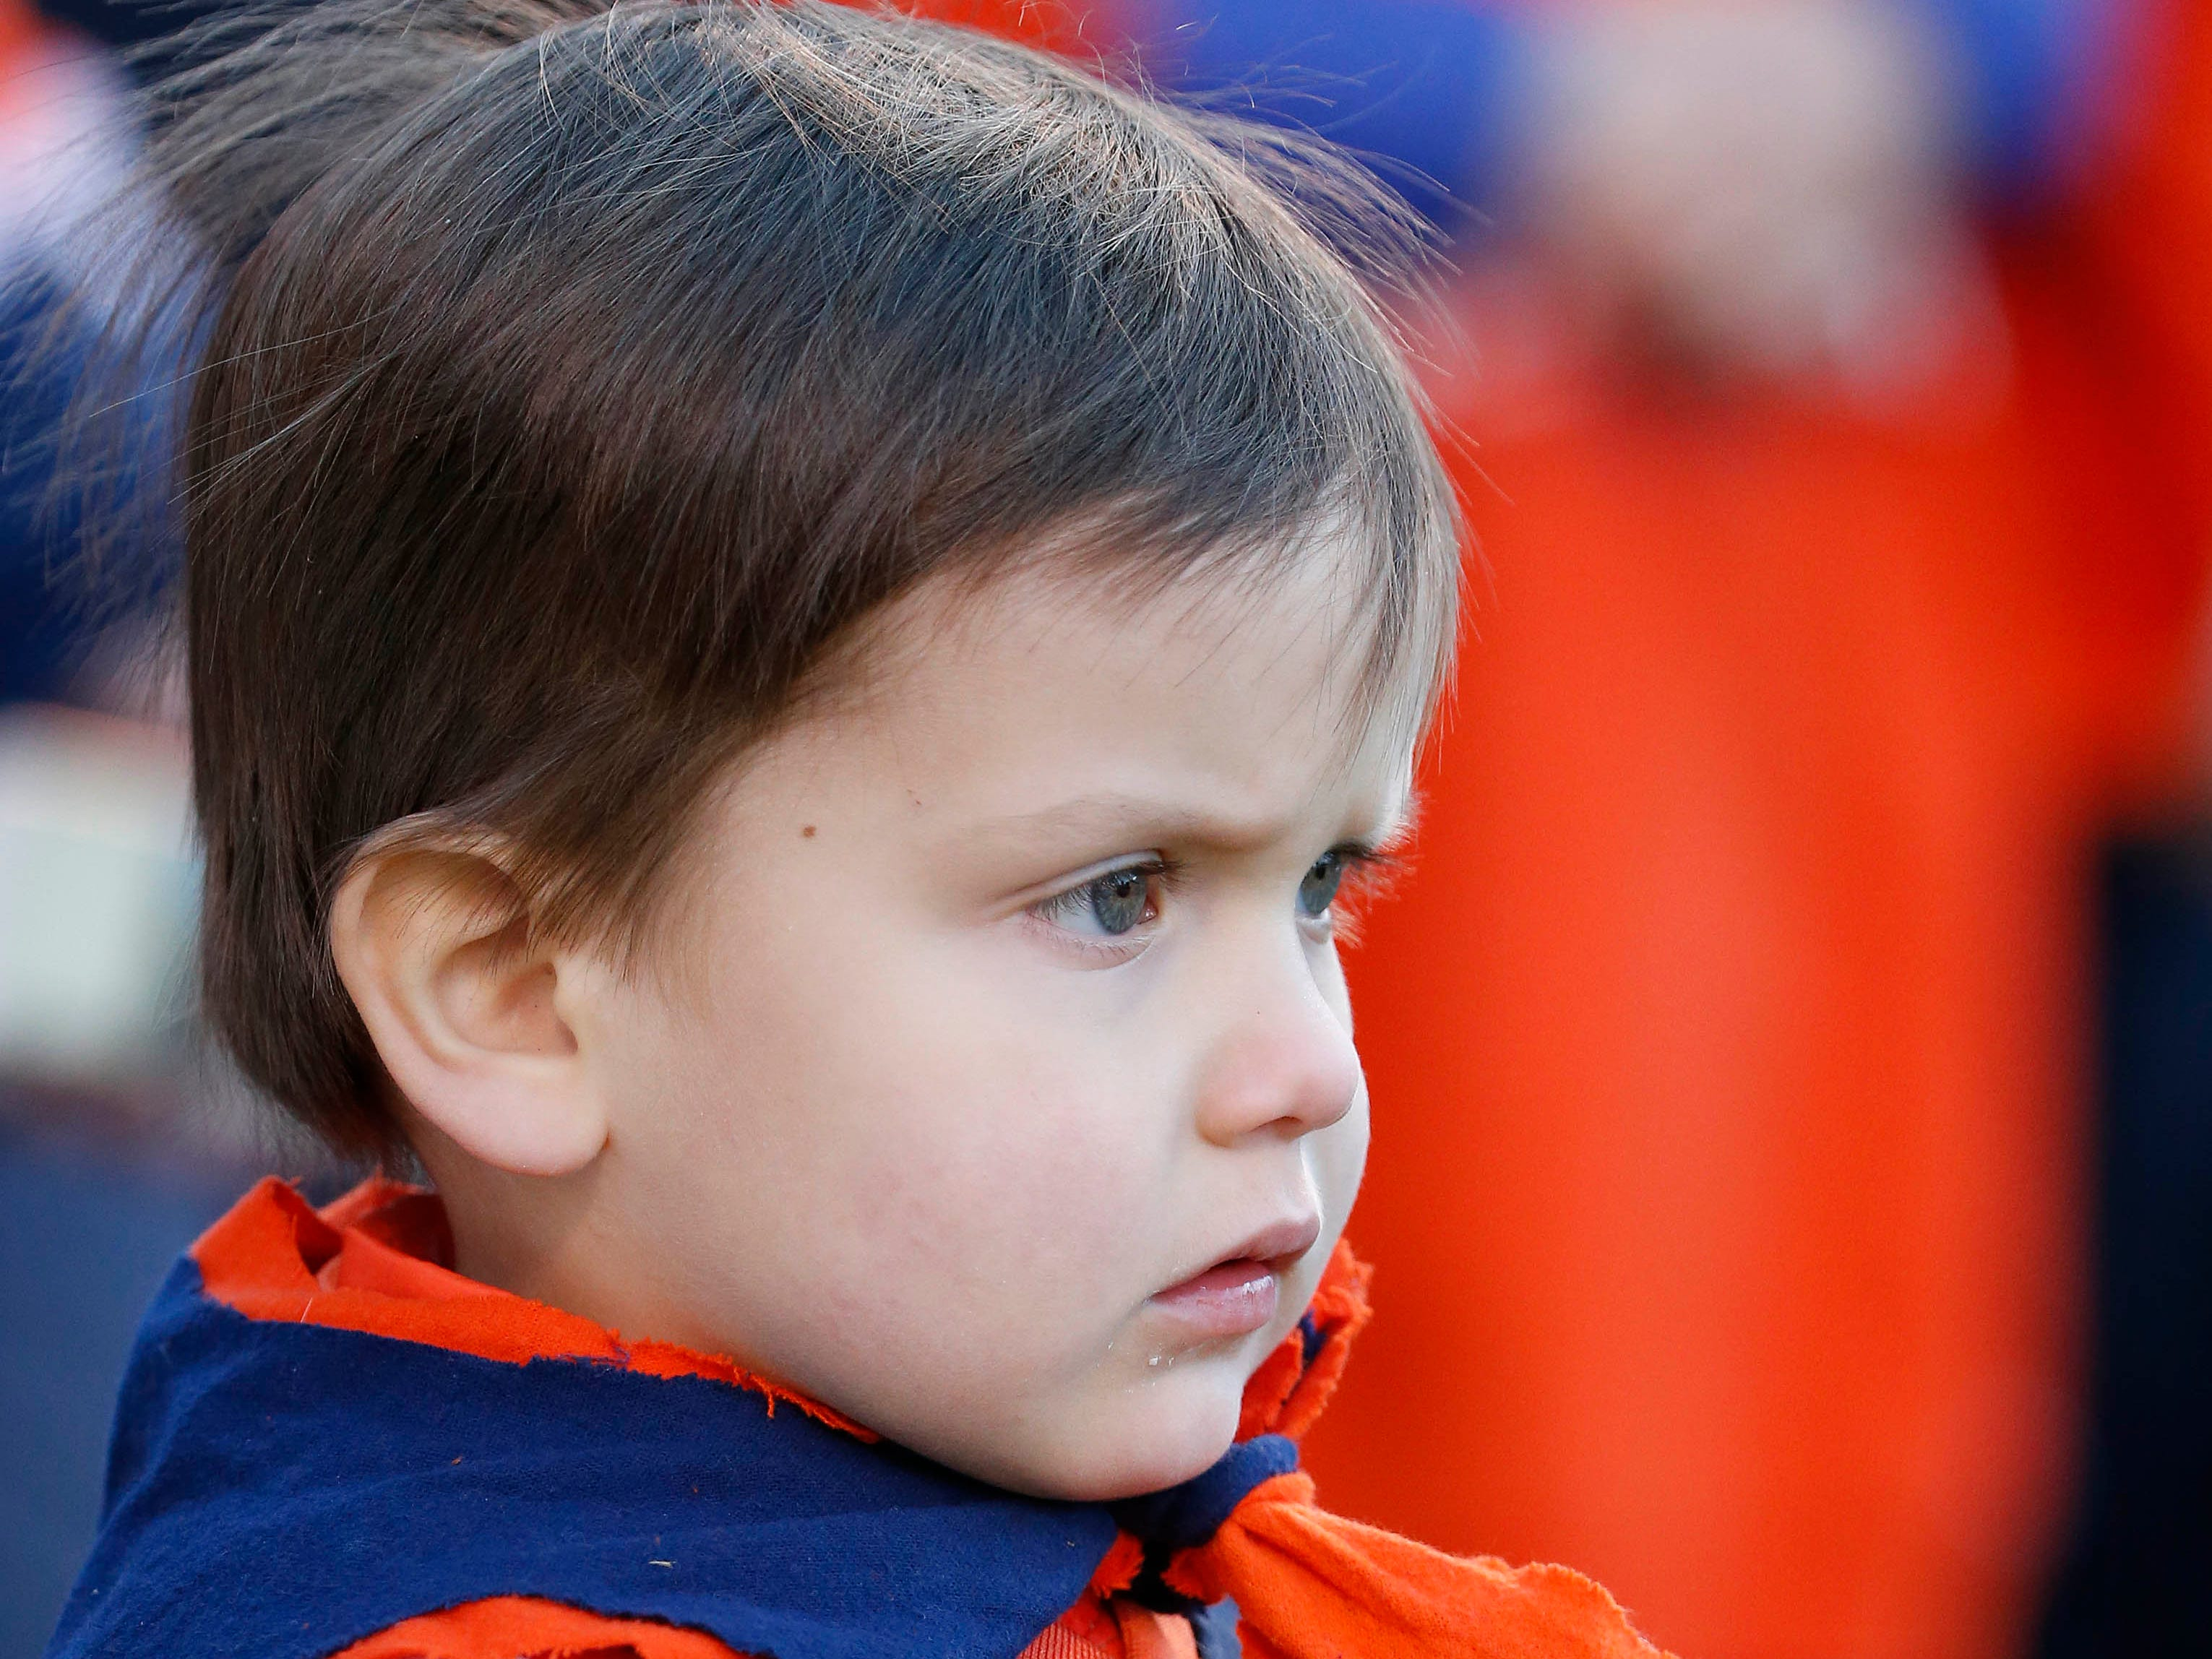 Week 11: A young Virginia Cavaliers fan looks on from the sidelines during the first half against the Liberty Flames at Scott Stadium.